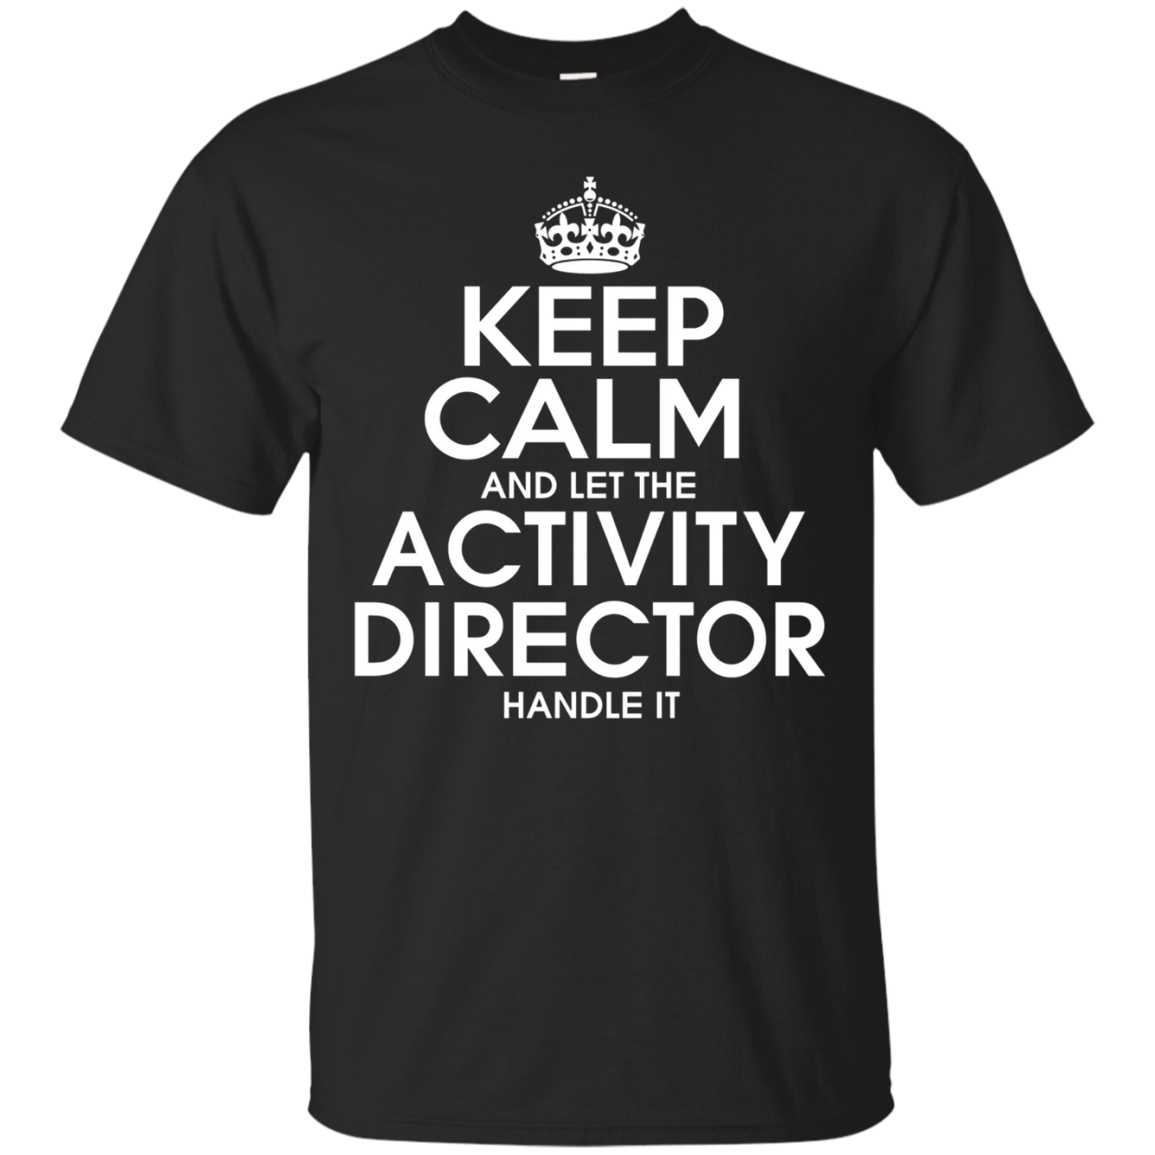 Keep calm and let the activity director handle it T Shirt